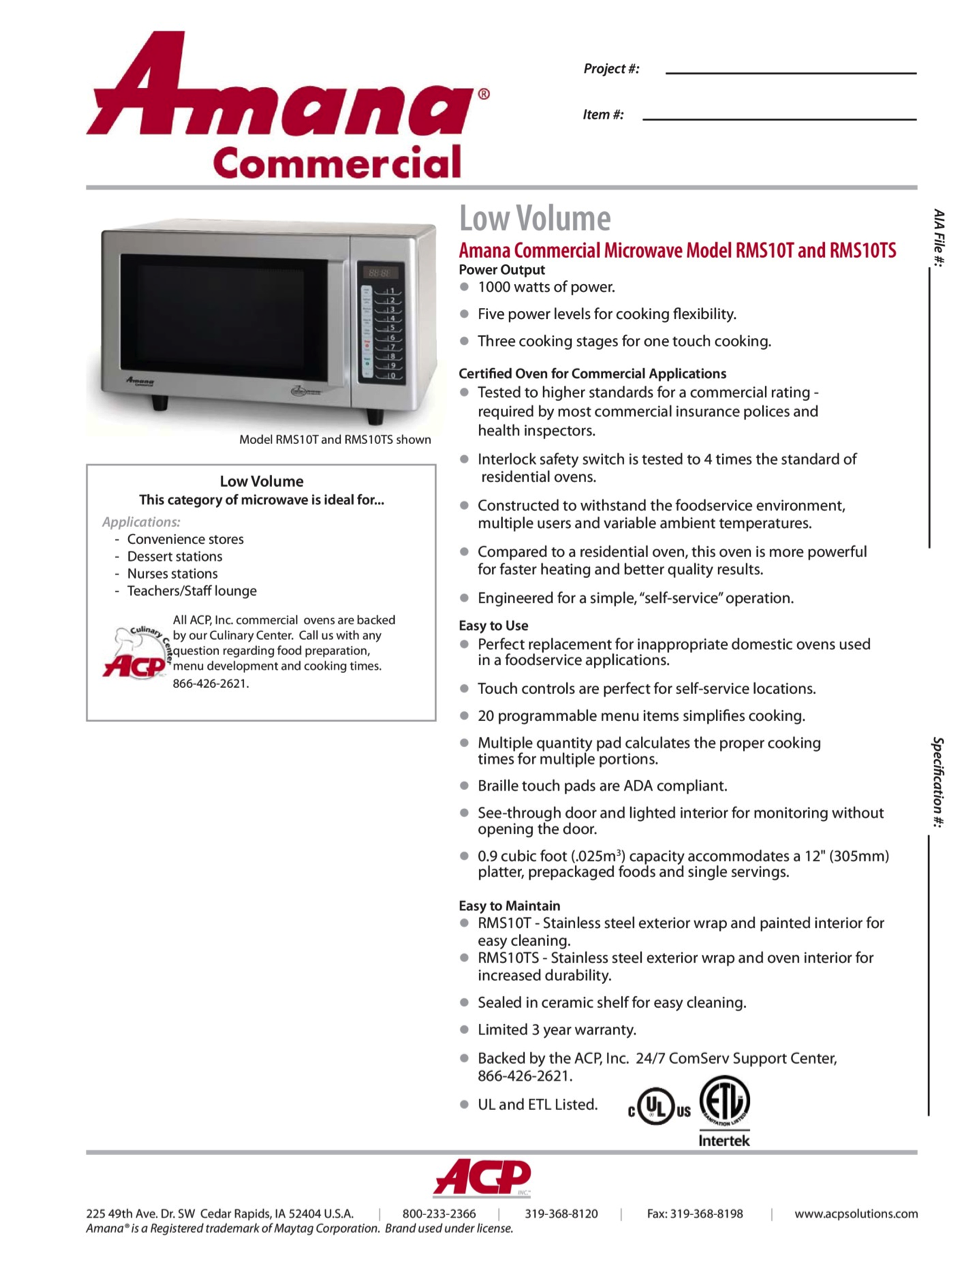 Microwaves for Home construction specification sheet